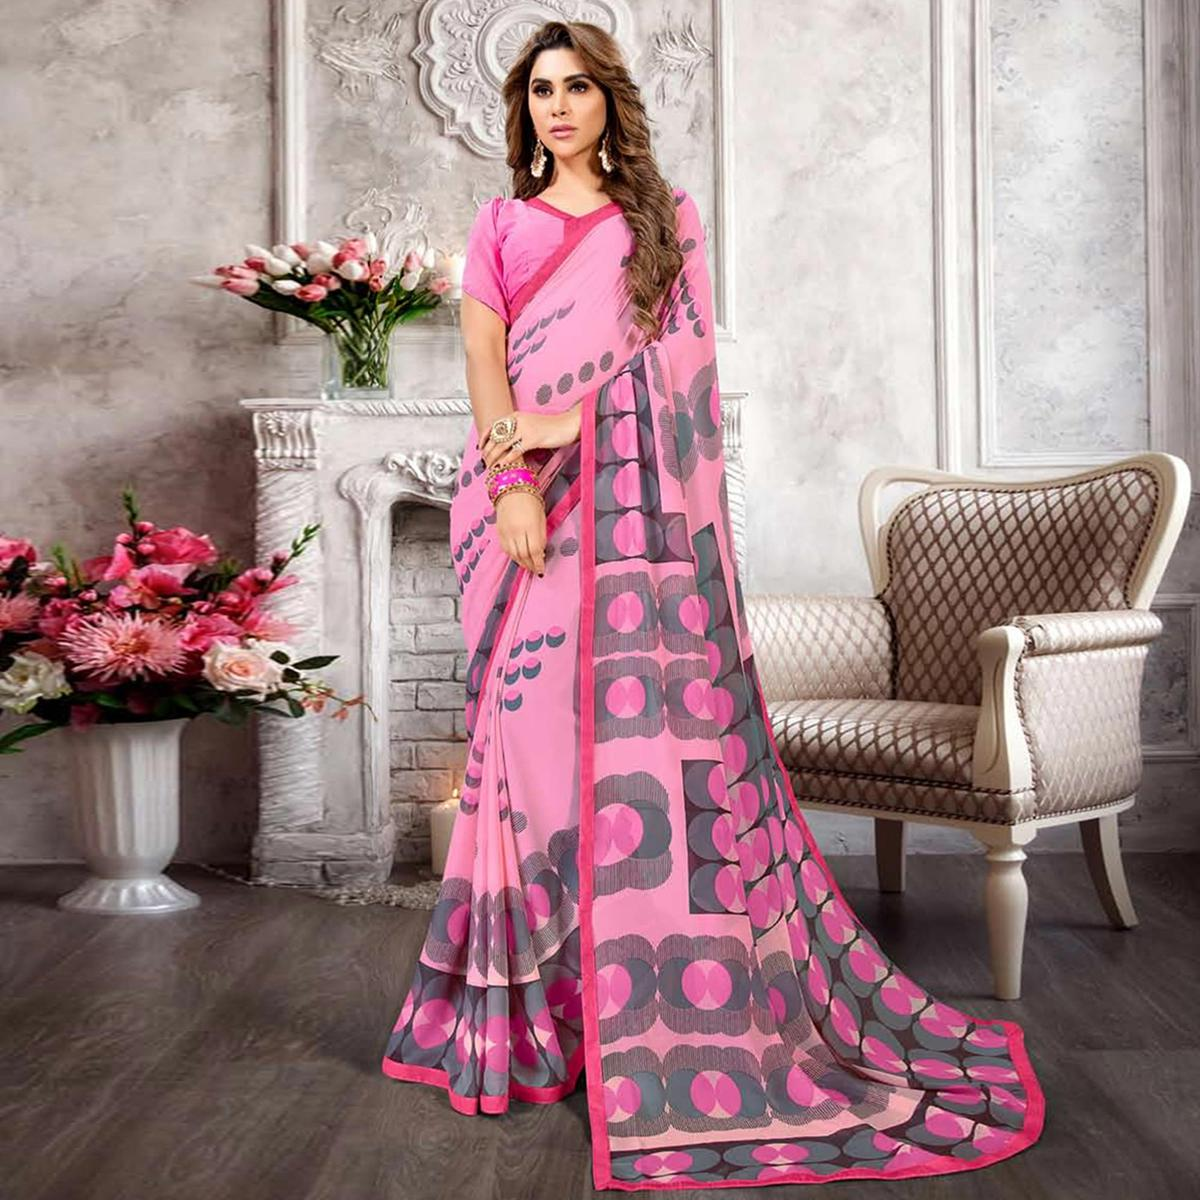 Imposing Pink Colored Casual Printed Heavy Georgette Saree With Lace Border